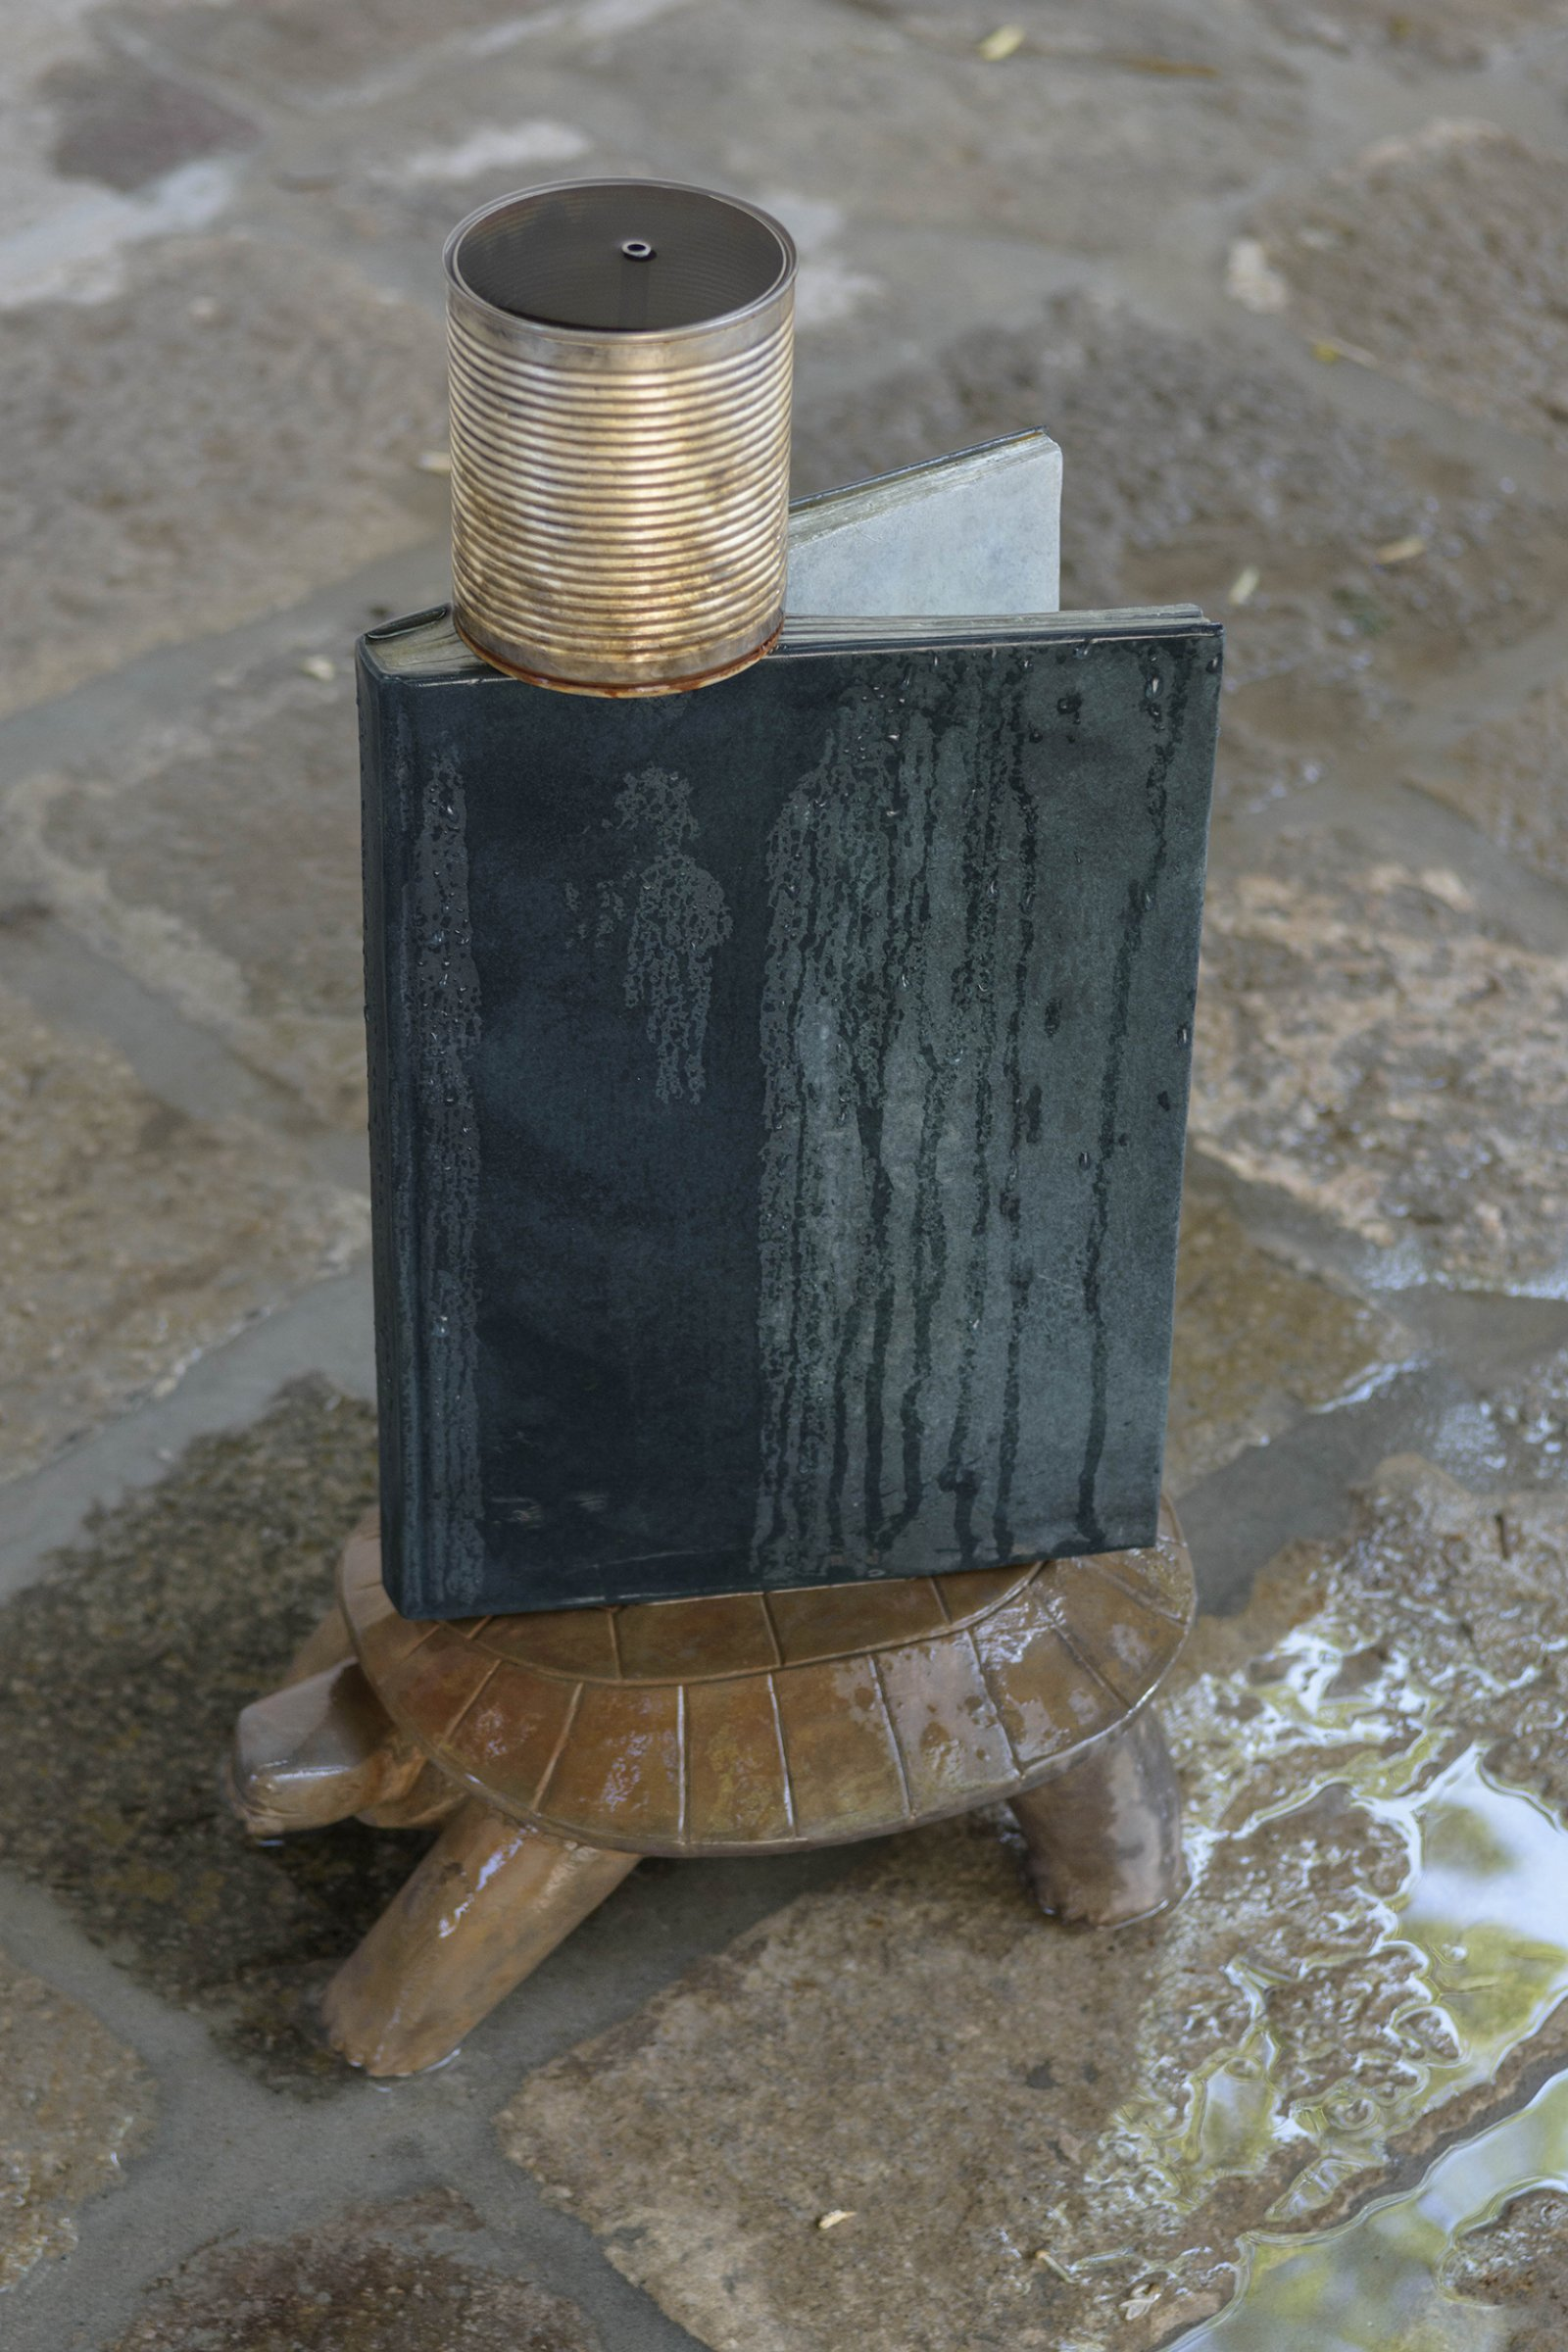 Geoffrey Farmer, Turtle, 2017, cast bronze, tin can, waterworks, 28 x 12 x 9 in. (70 x 30 x 22 cm). Installation view, A way out of the mirror, Canada Pavilion, 57th Venice Biennale, Venice, Italy